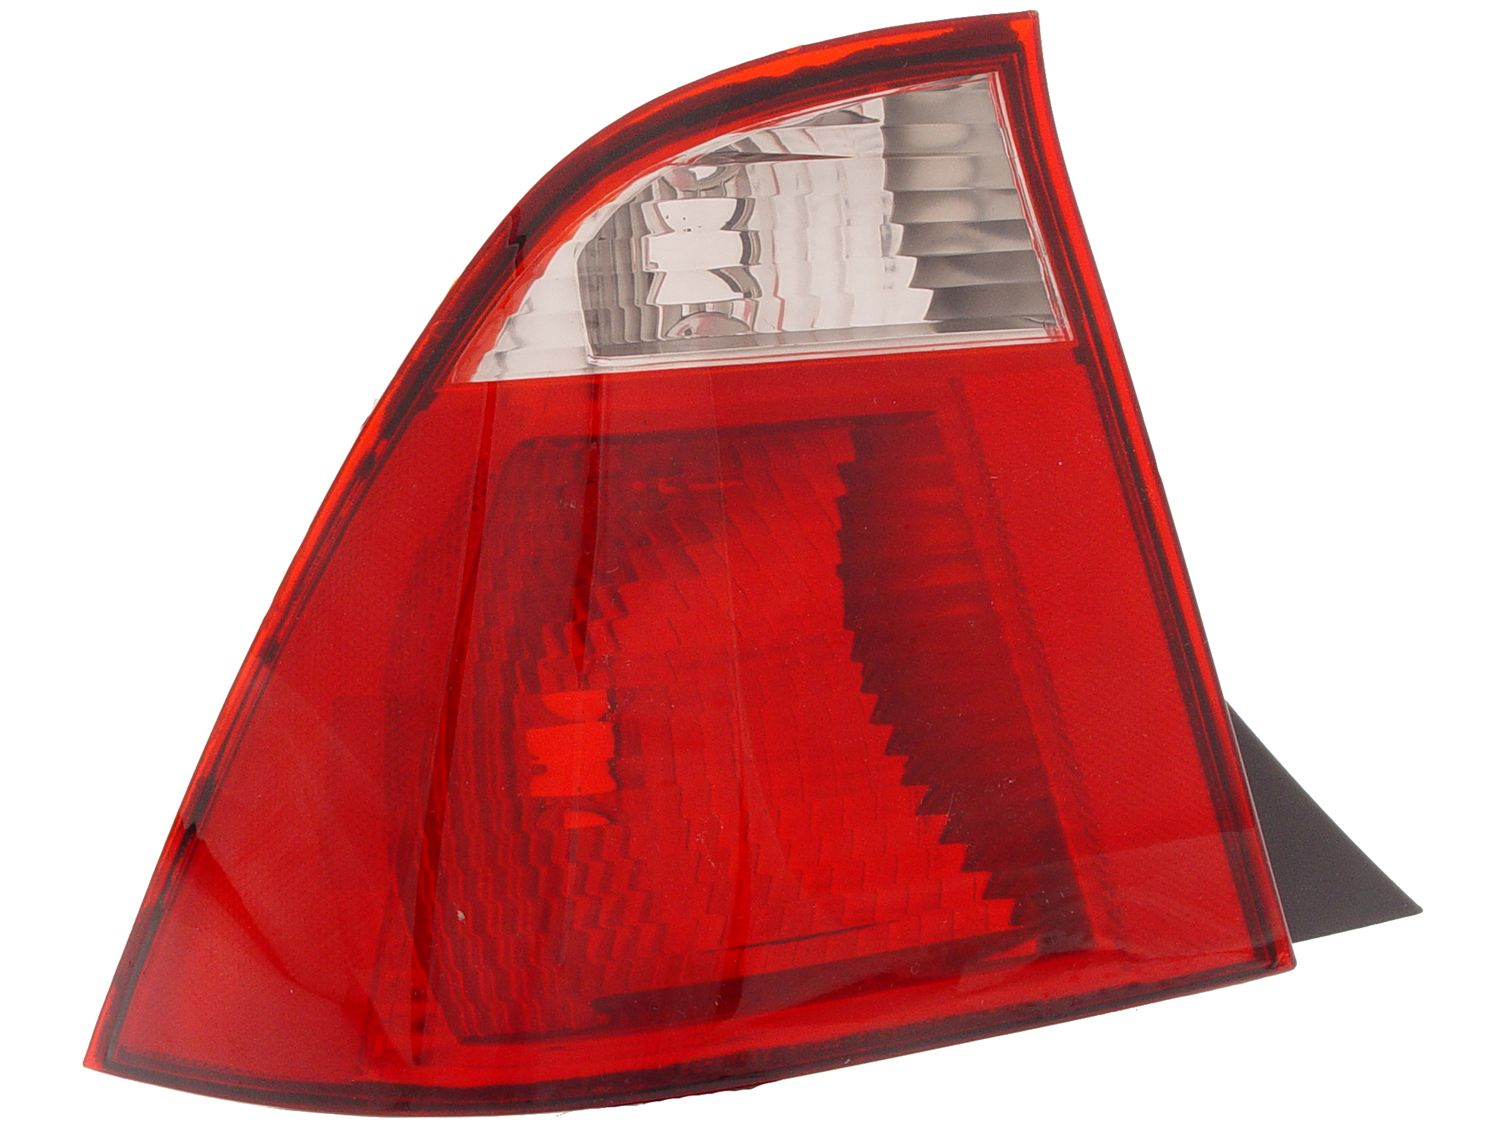 2005 Ford Focus Tail Light Embly Rb 1611190